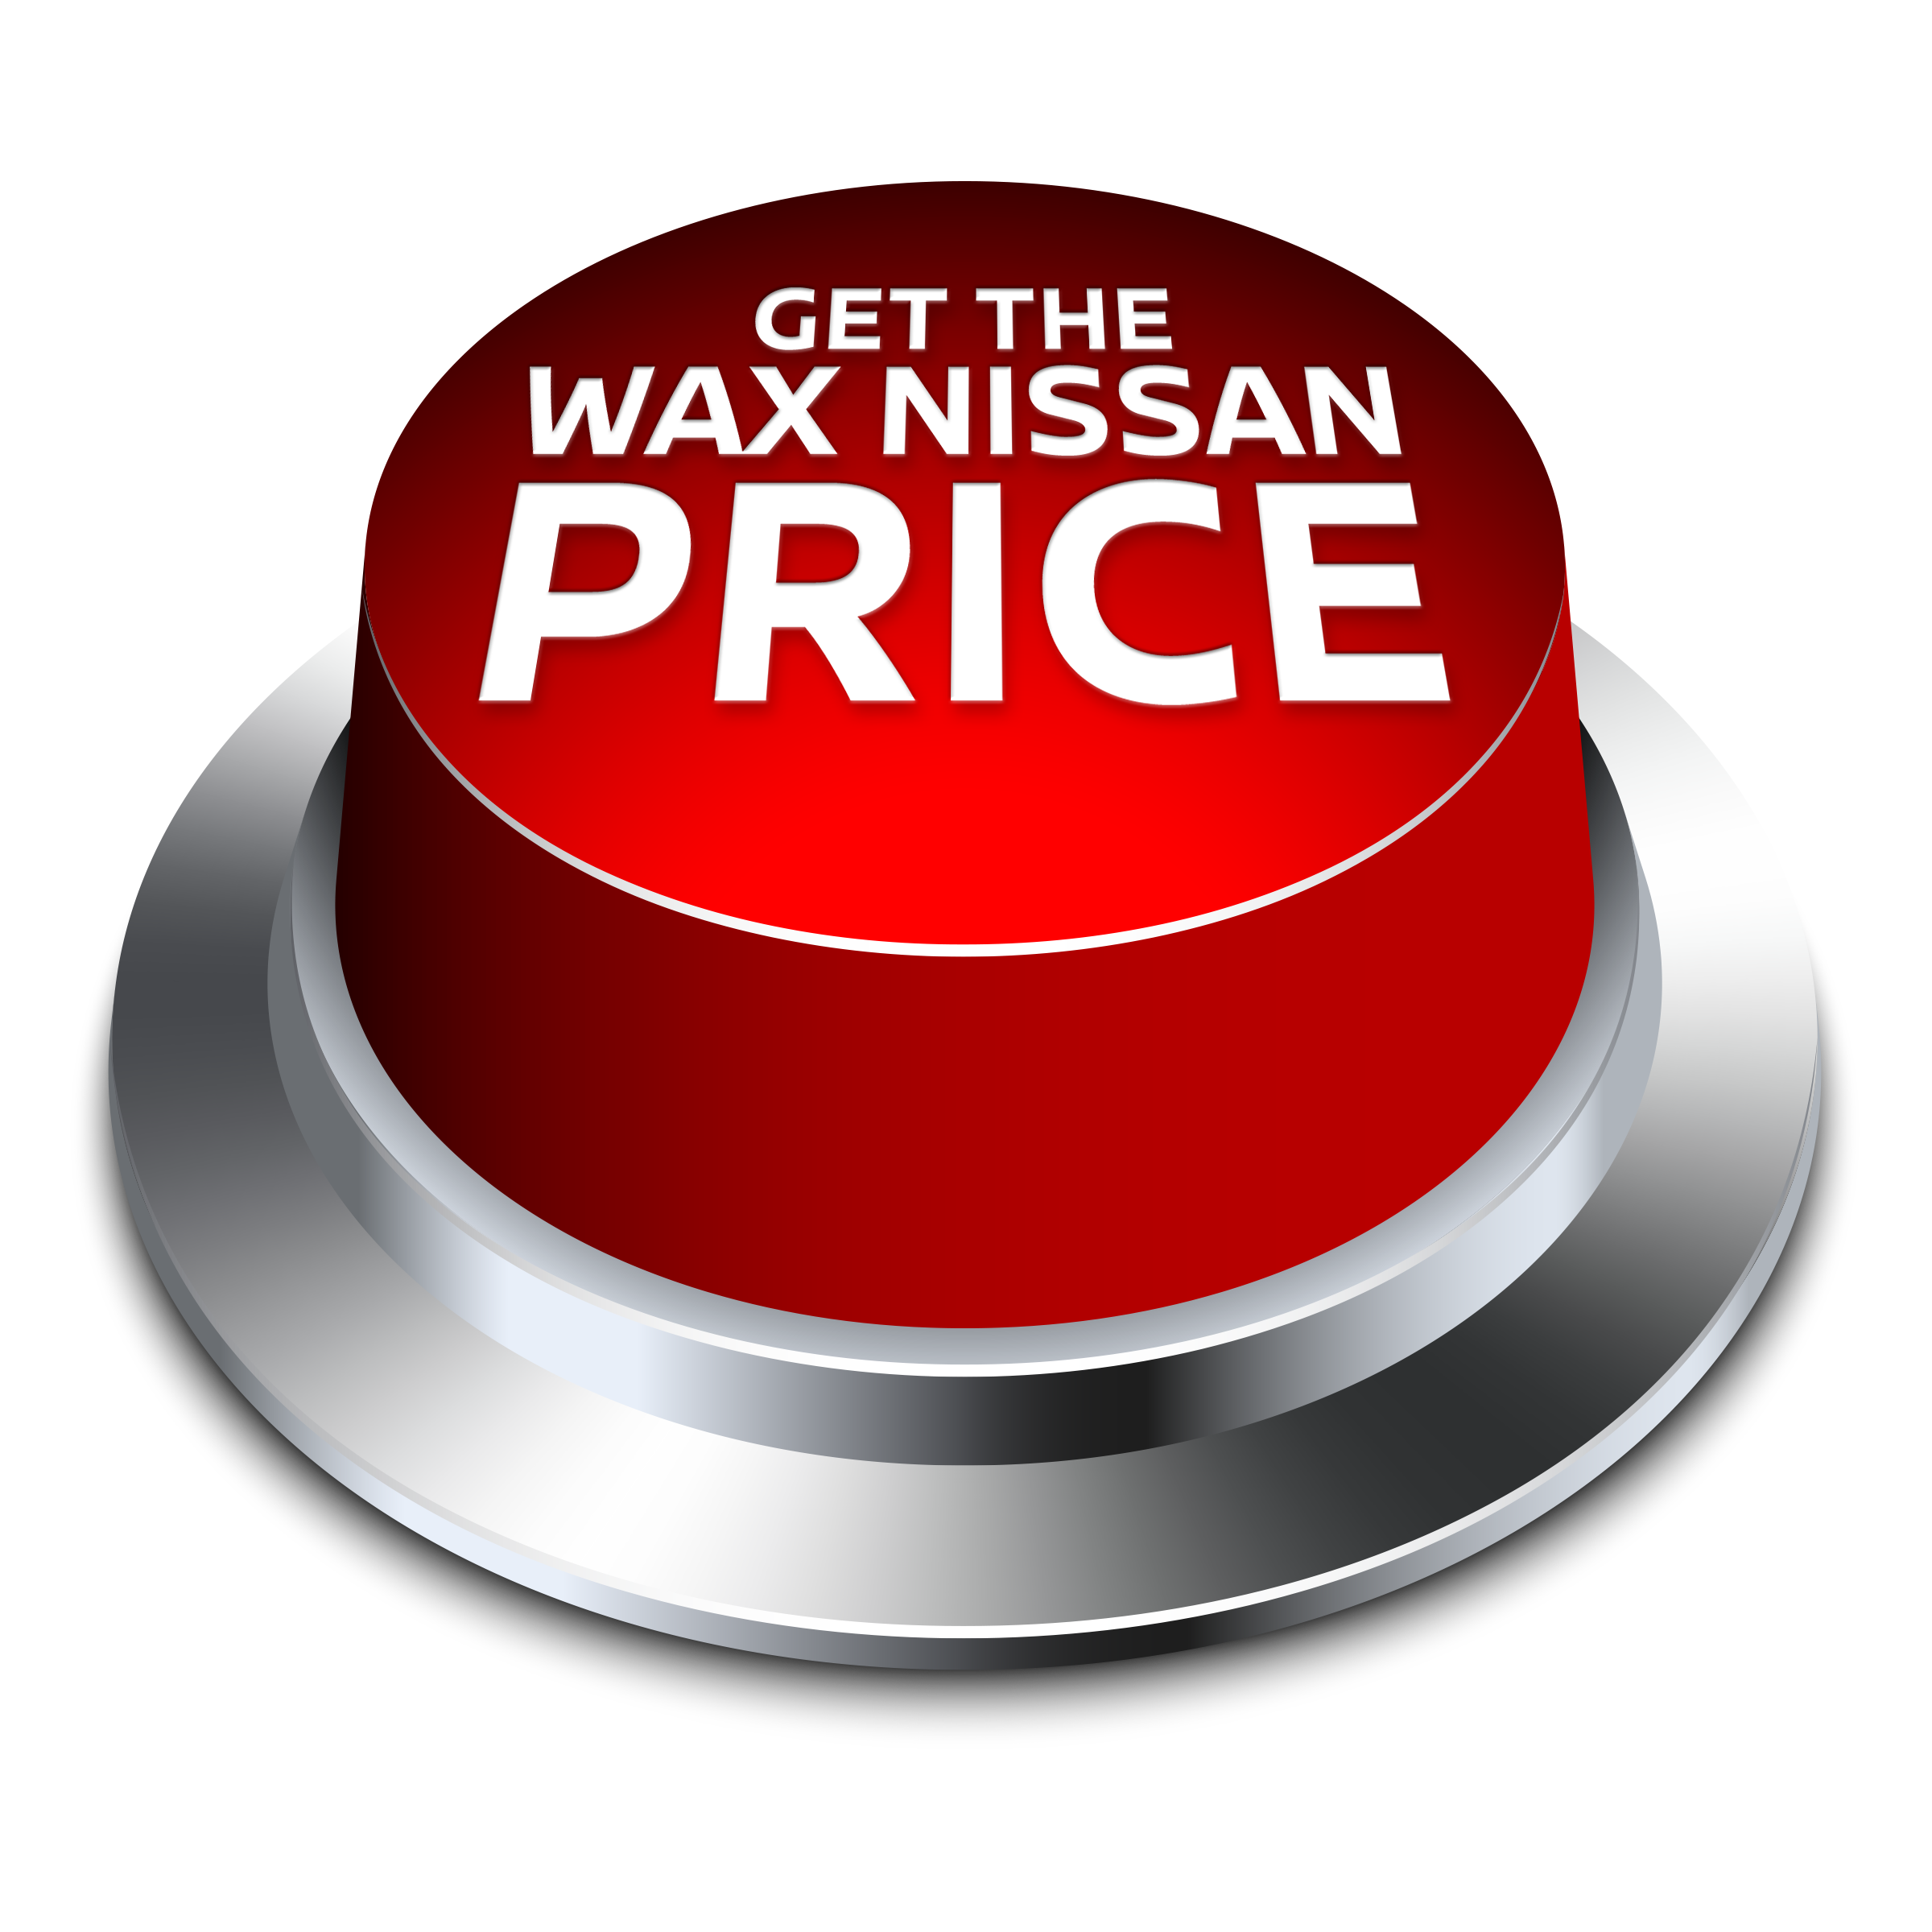 Get Price for this 2017 Nissan Sentra S 4dr Car